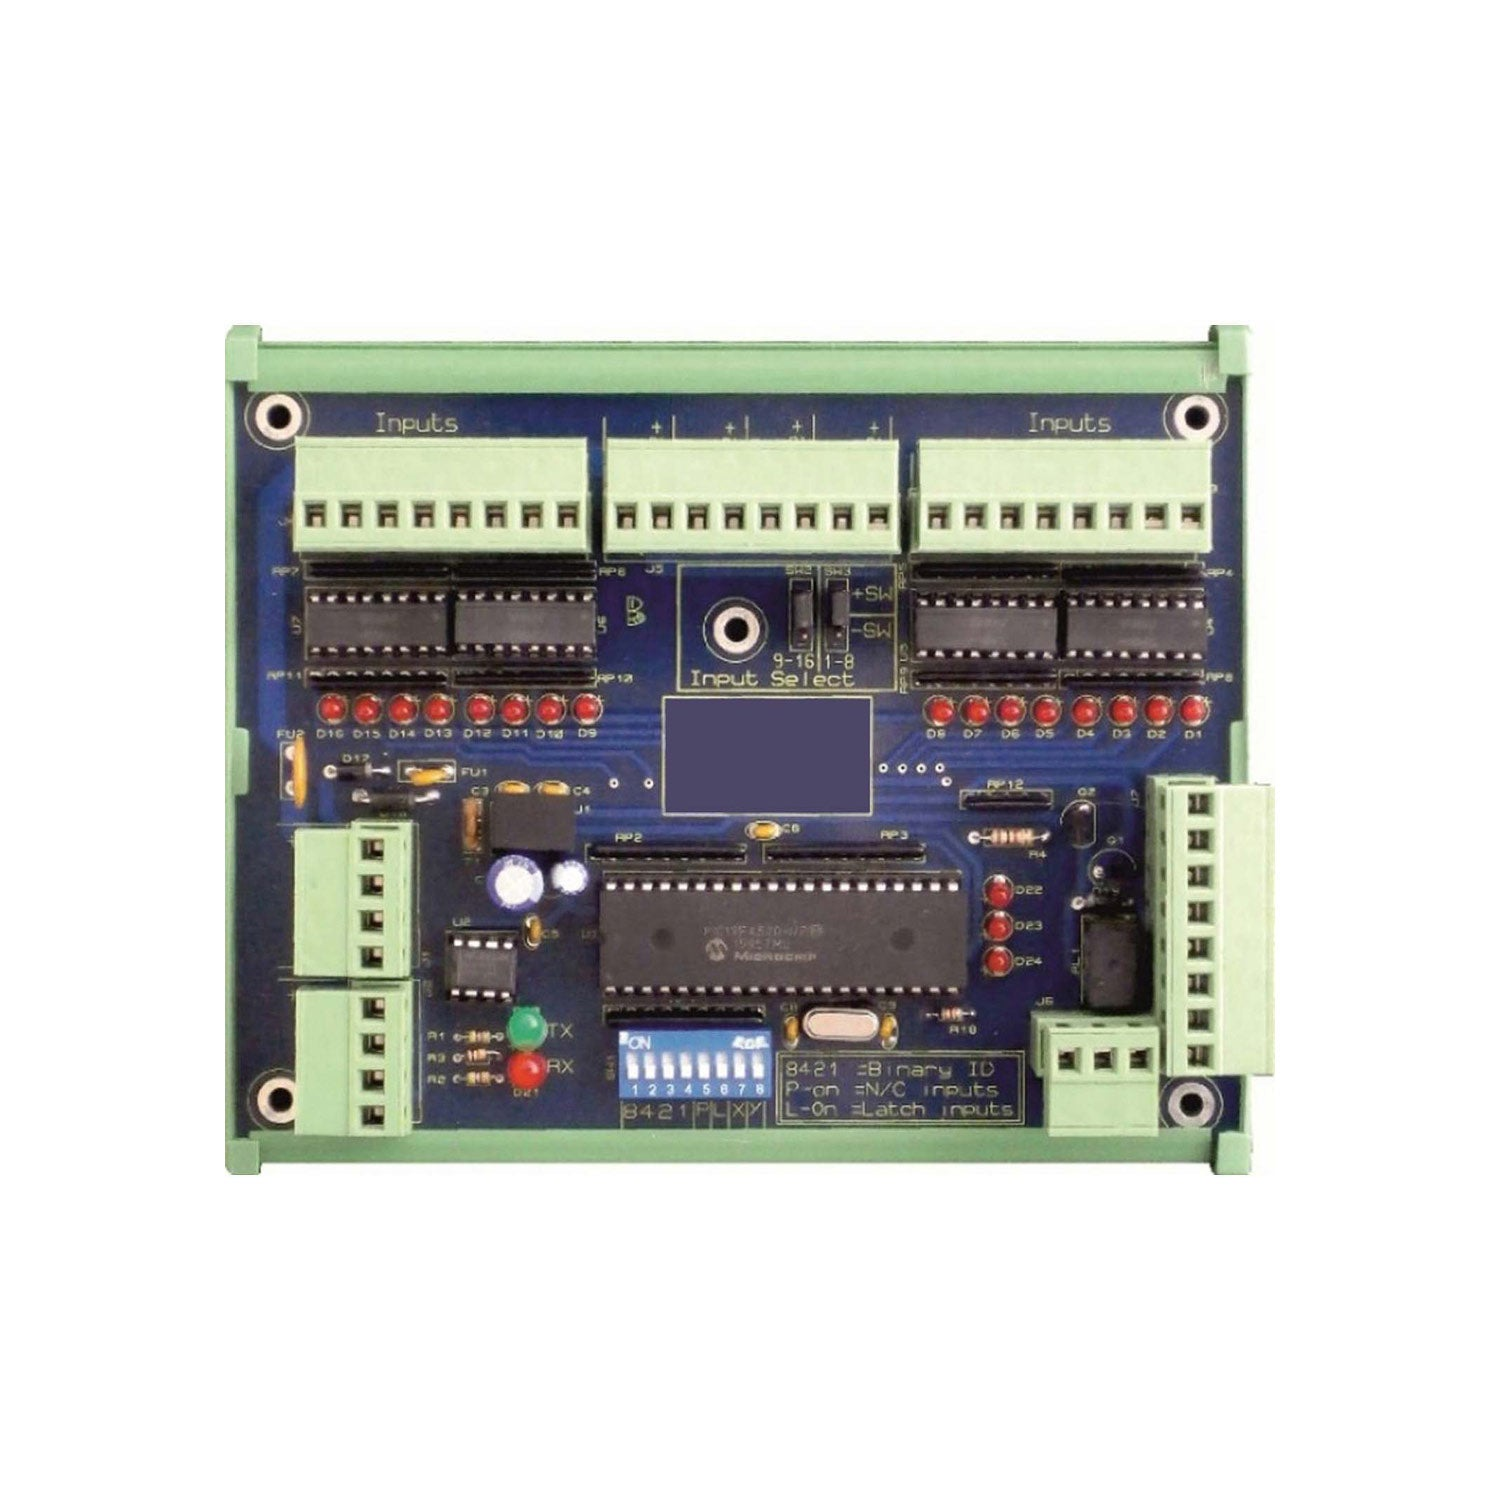 Spot Alarm 16 Way Input Controller on a white background